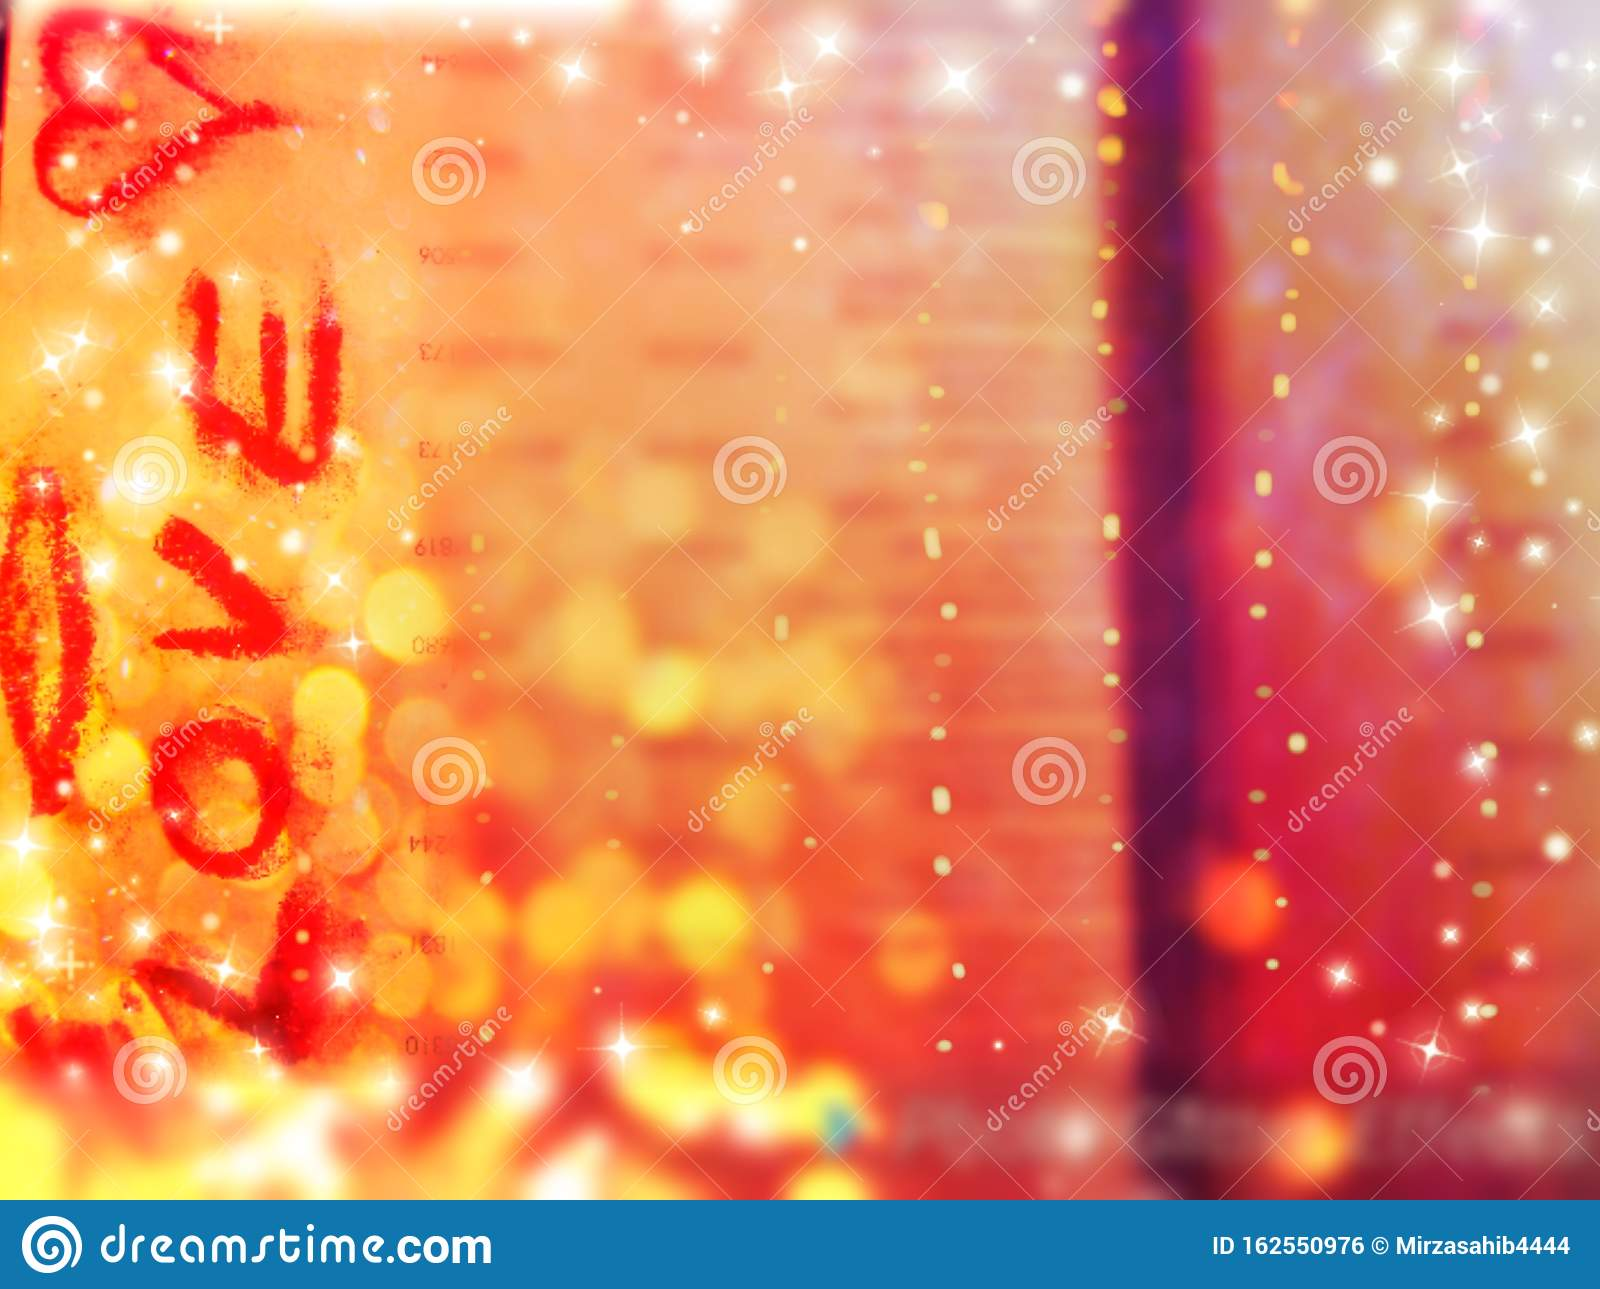 Love Wallpaper Background For Valentine X27 S Day New Designs